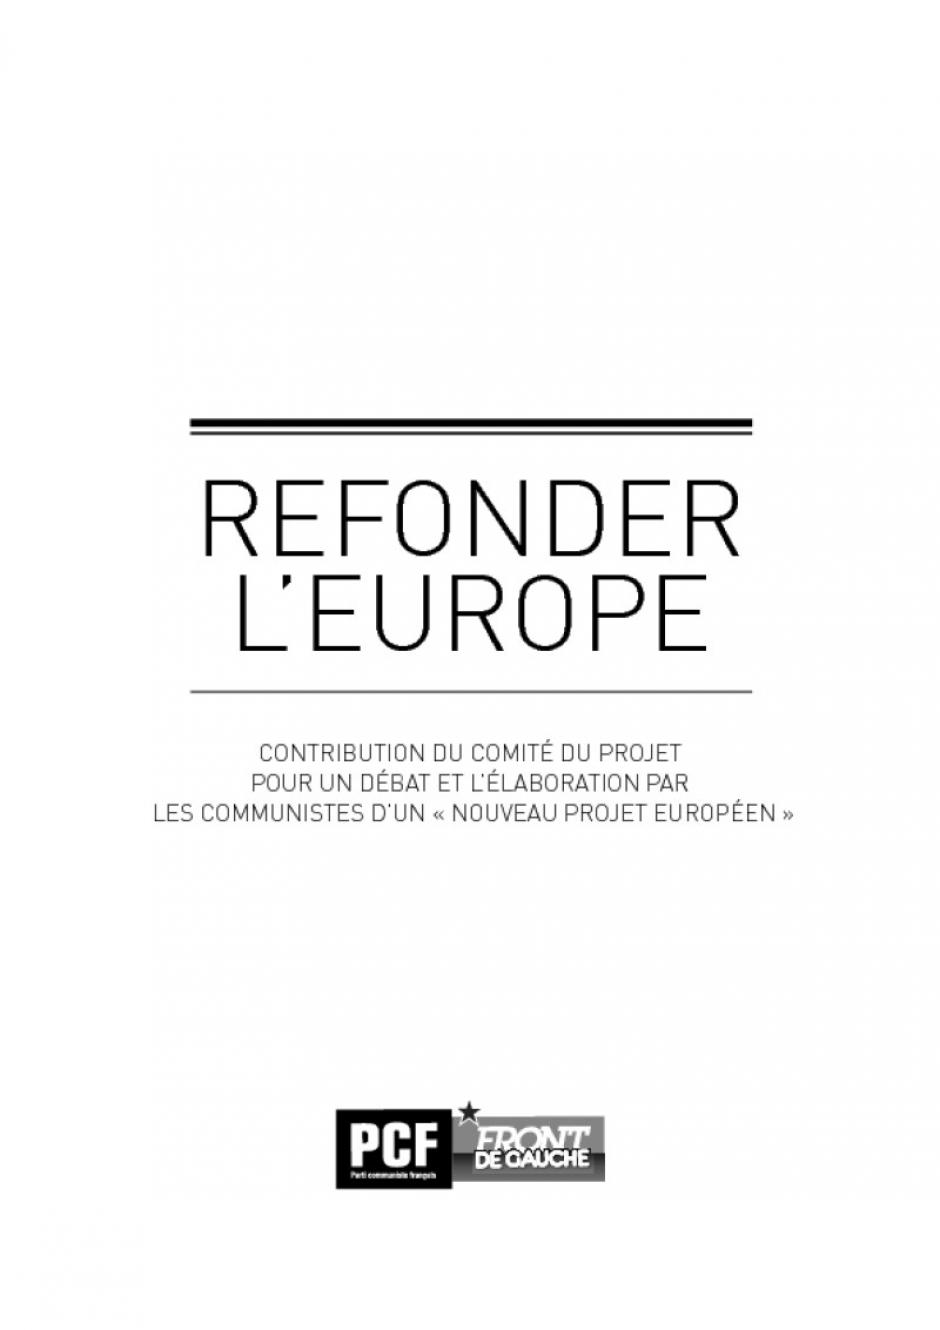 Refonder l'Europe - Préparation de la convention nationale du 16 novembre